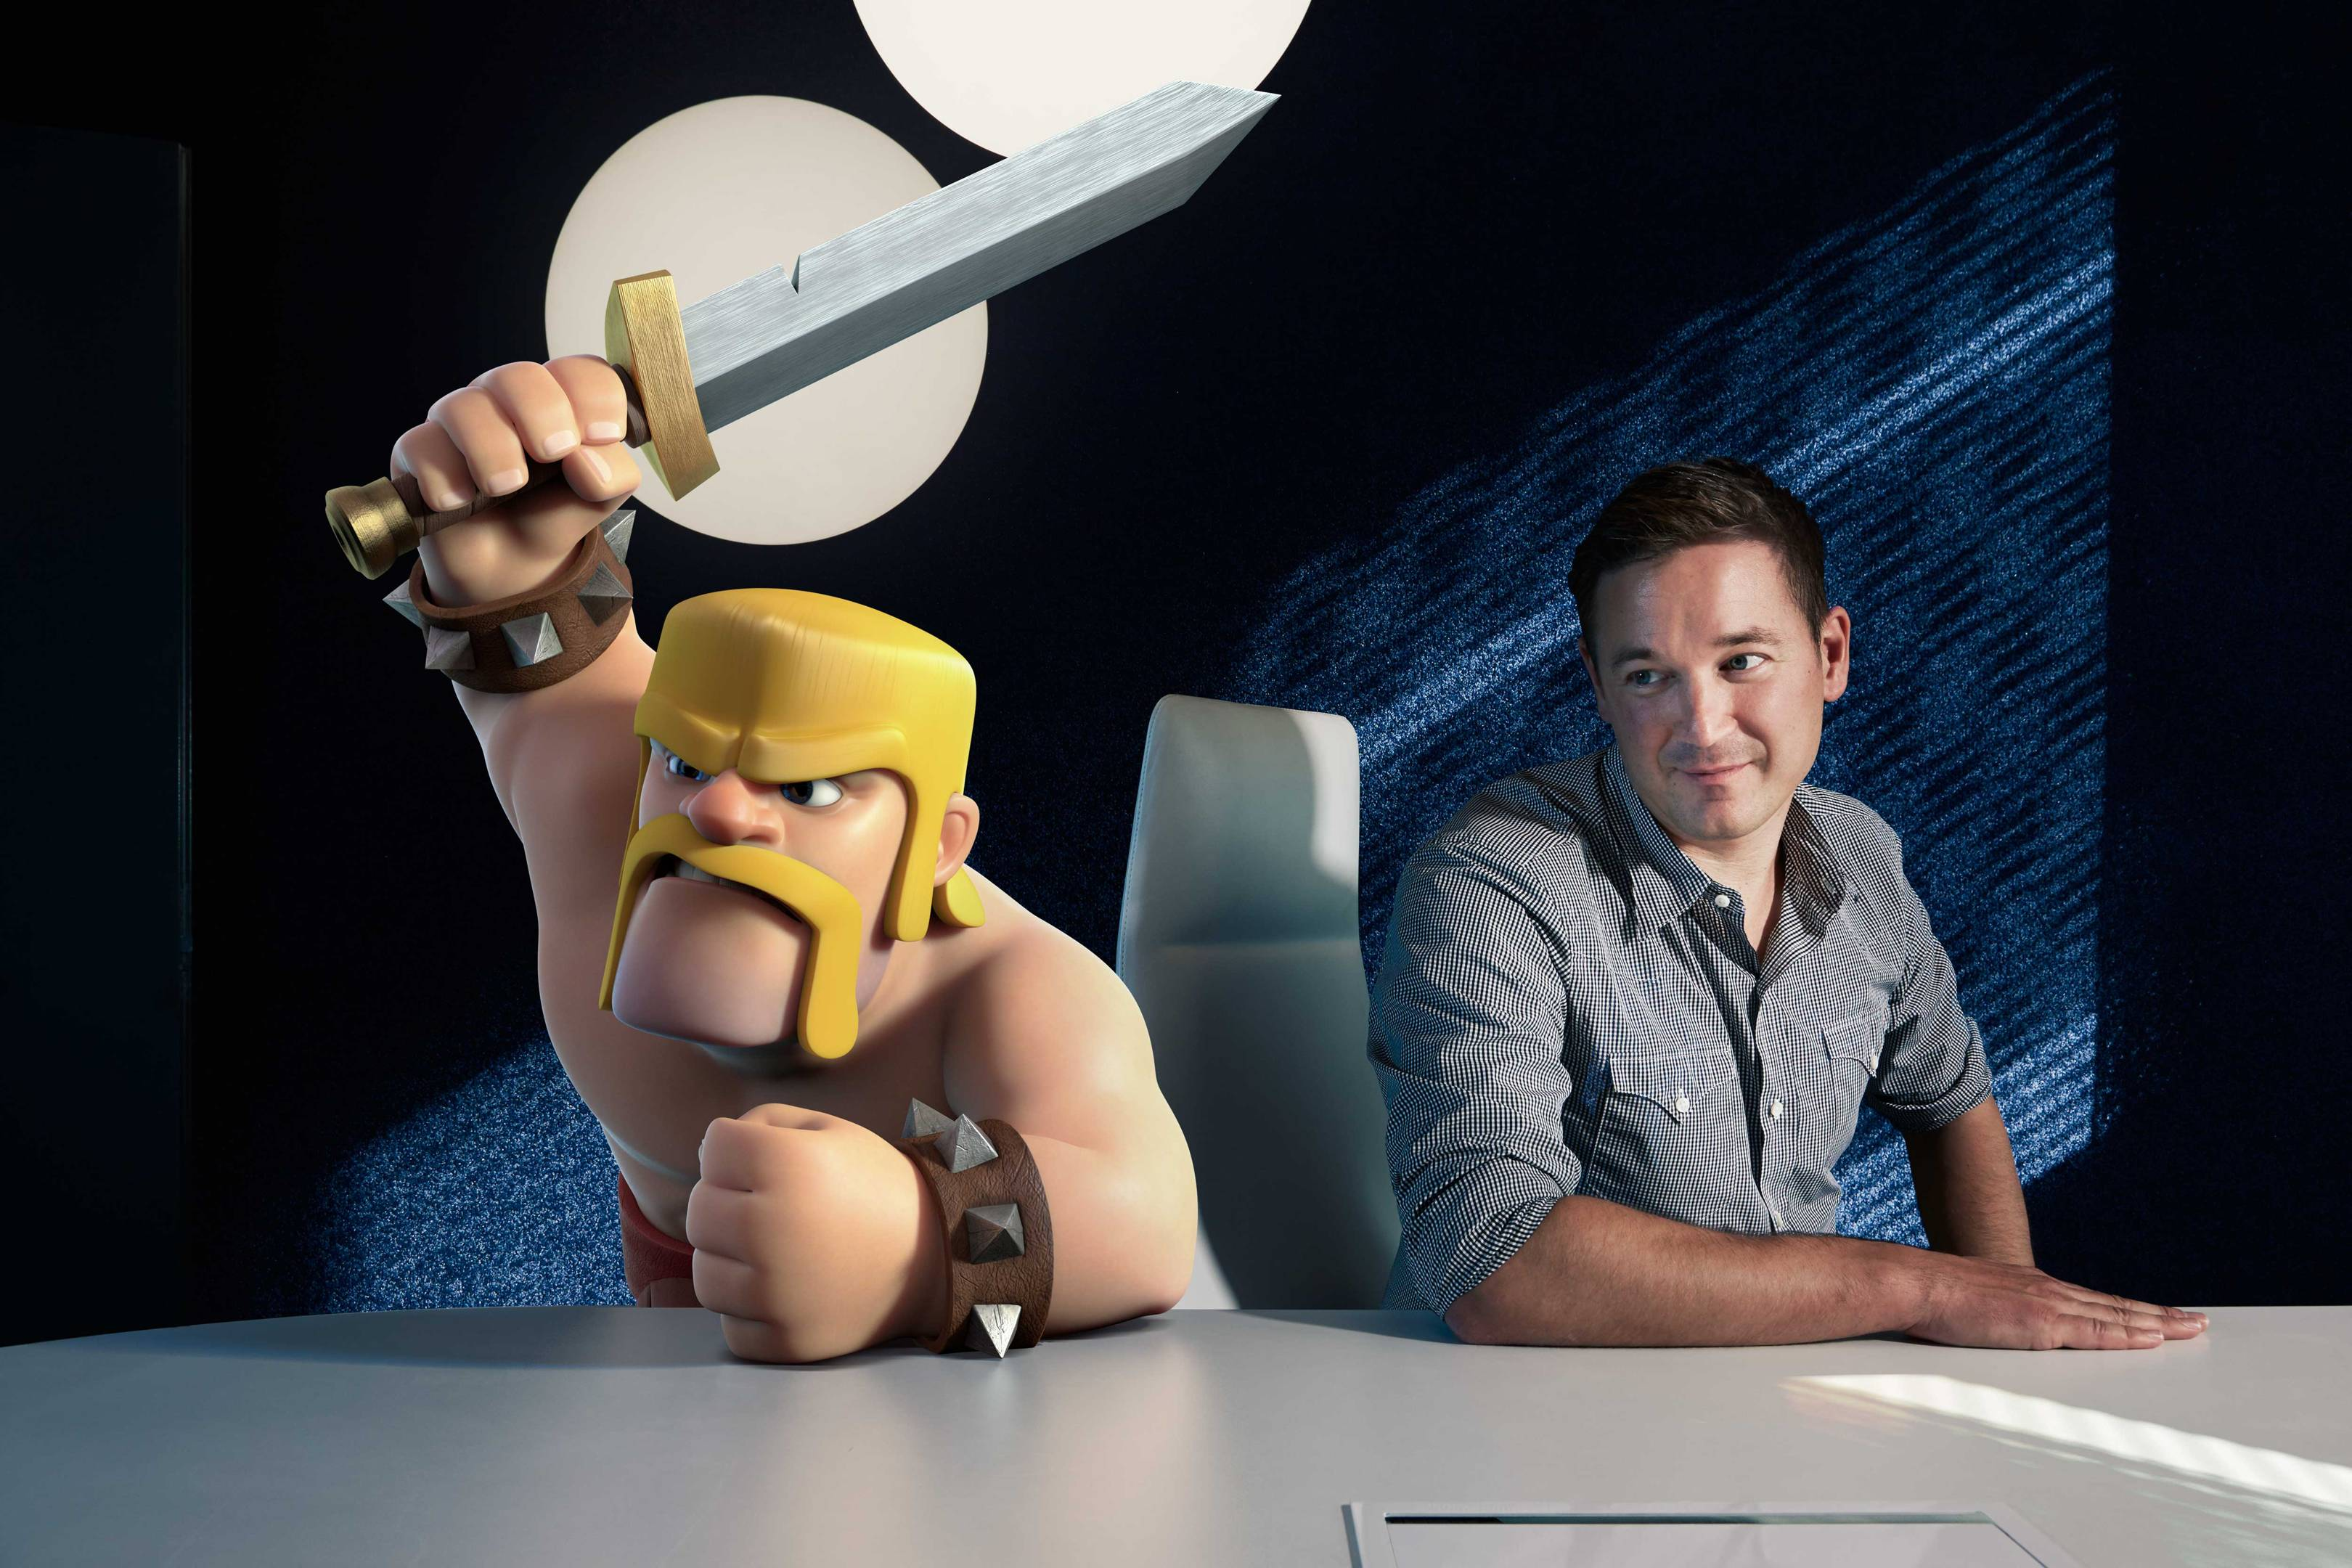 How Clash of Clans helped Supercell build a $10bn empire